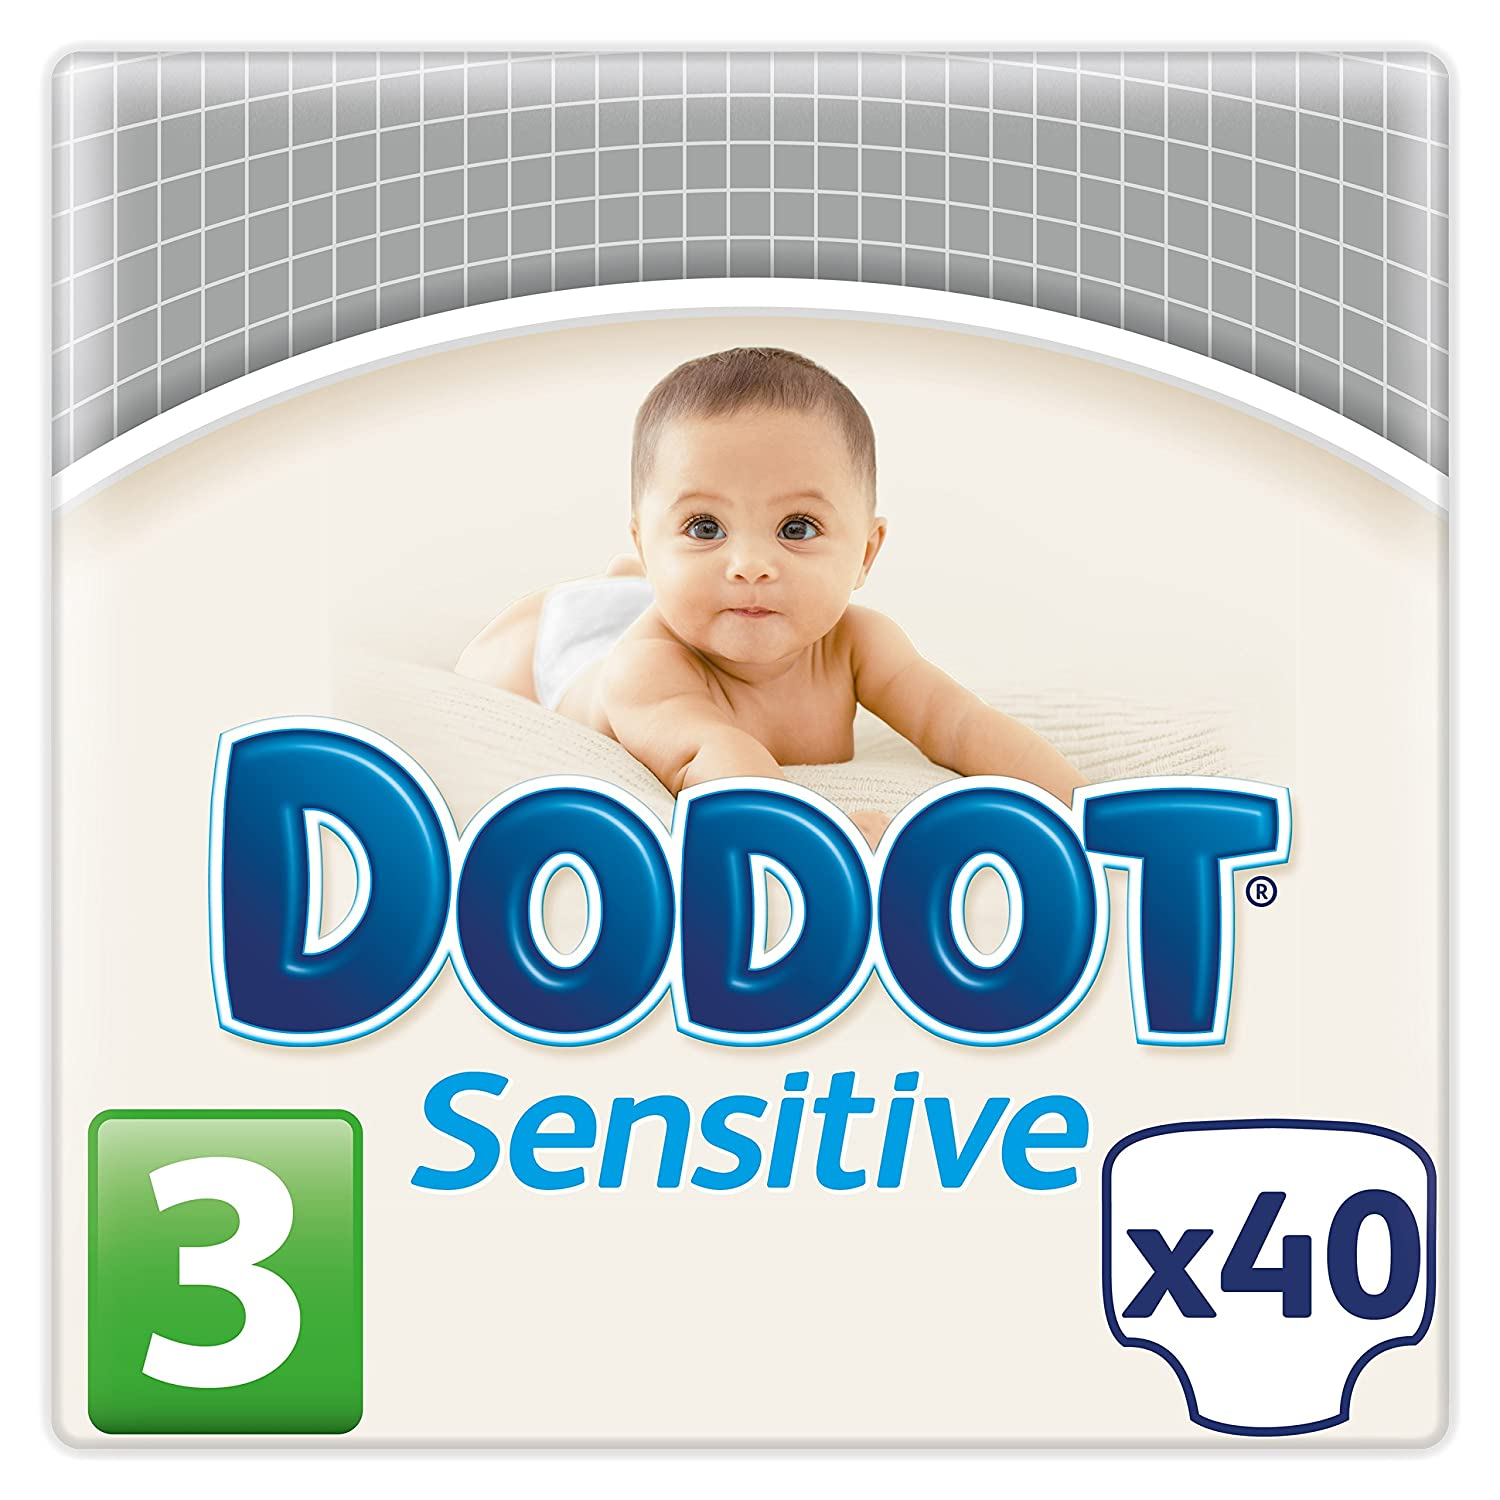 Dodot Pañales Sensitive, Talla 3 (5-10 kg) - 40 Pañales: Amazon.es: Amazon Pantry